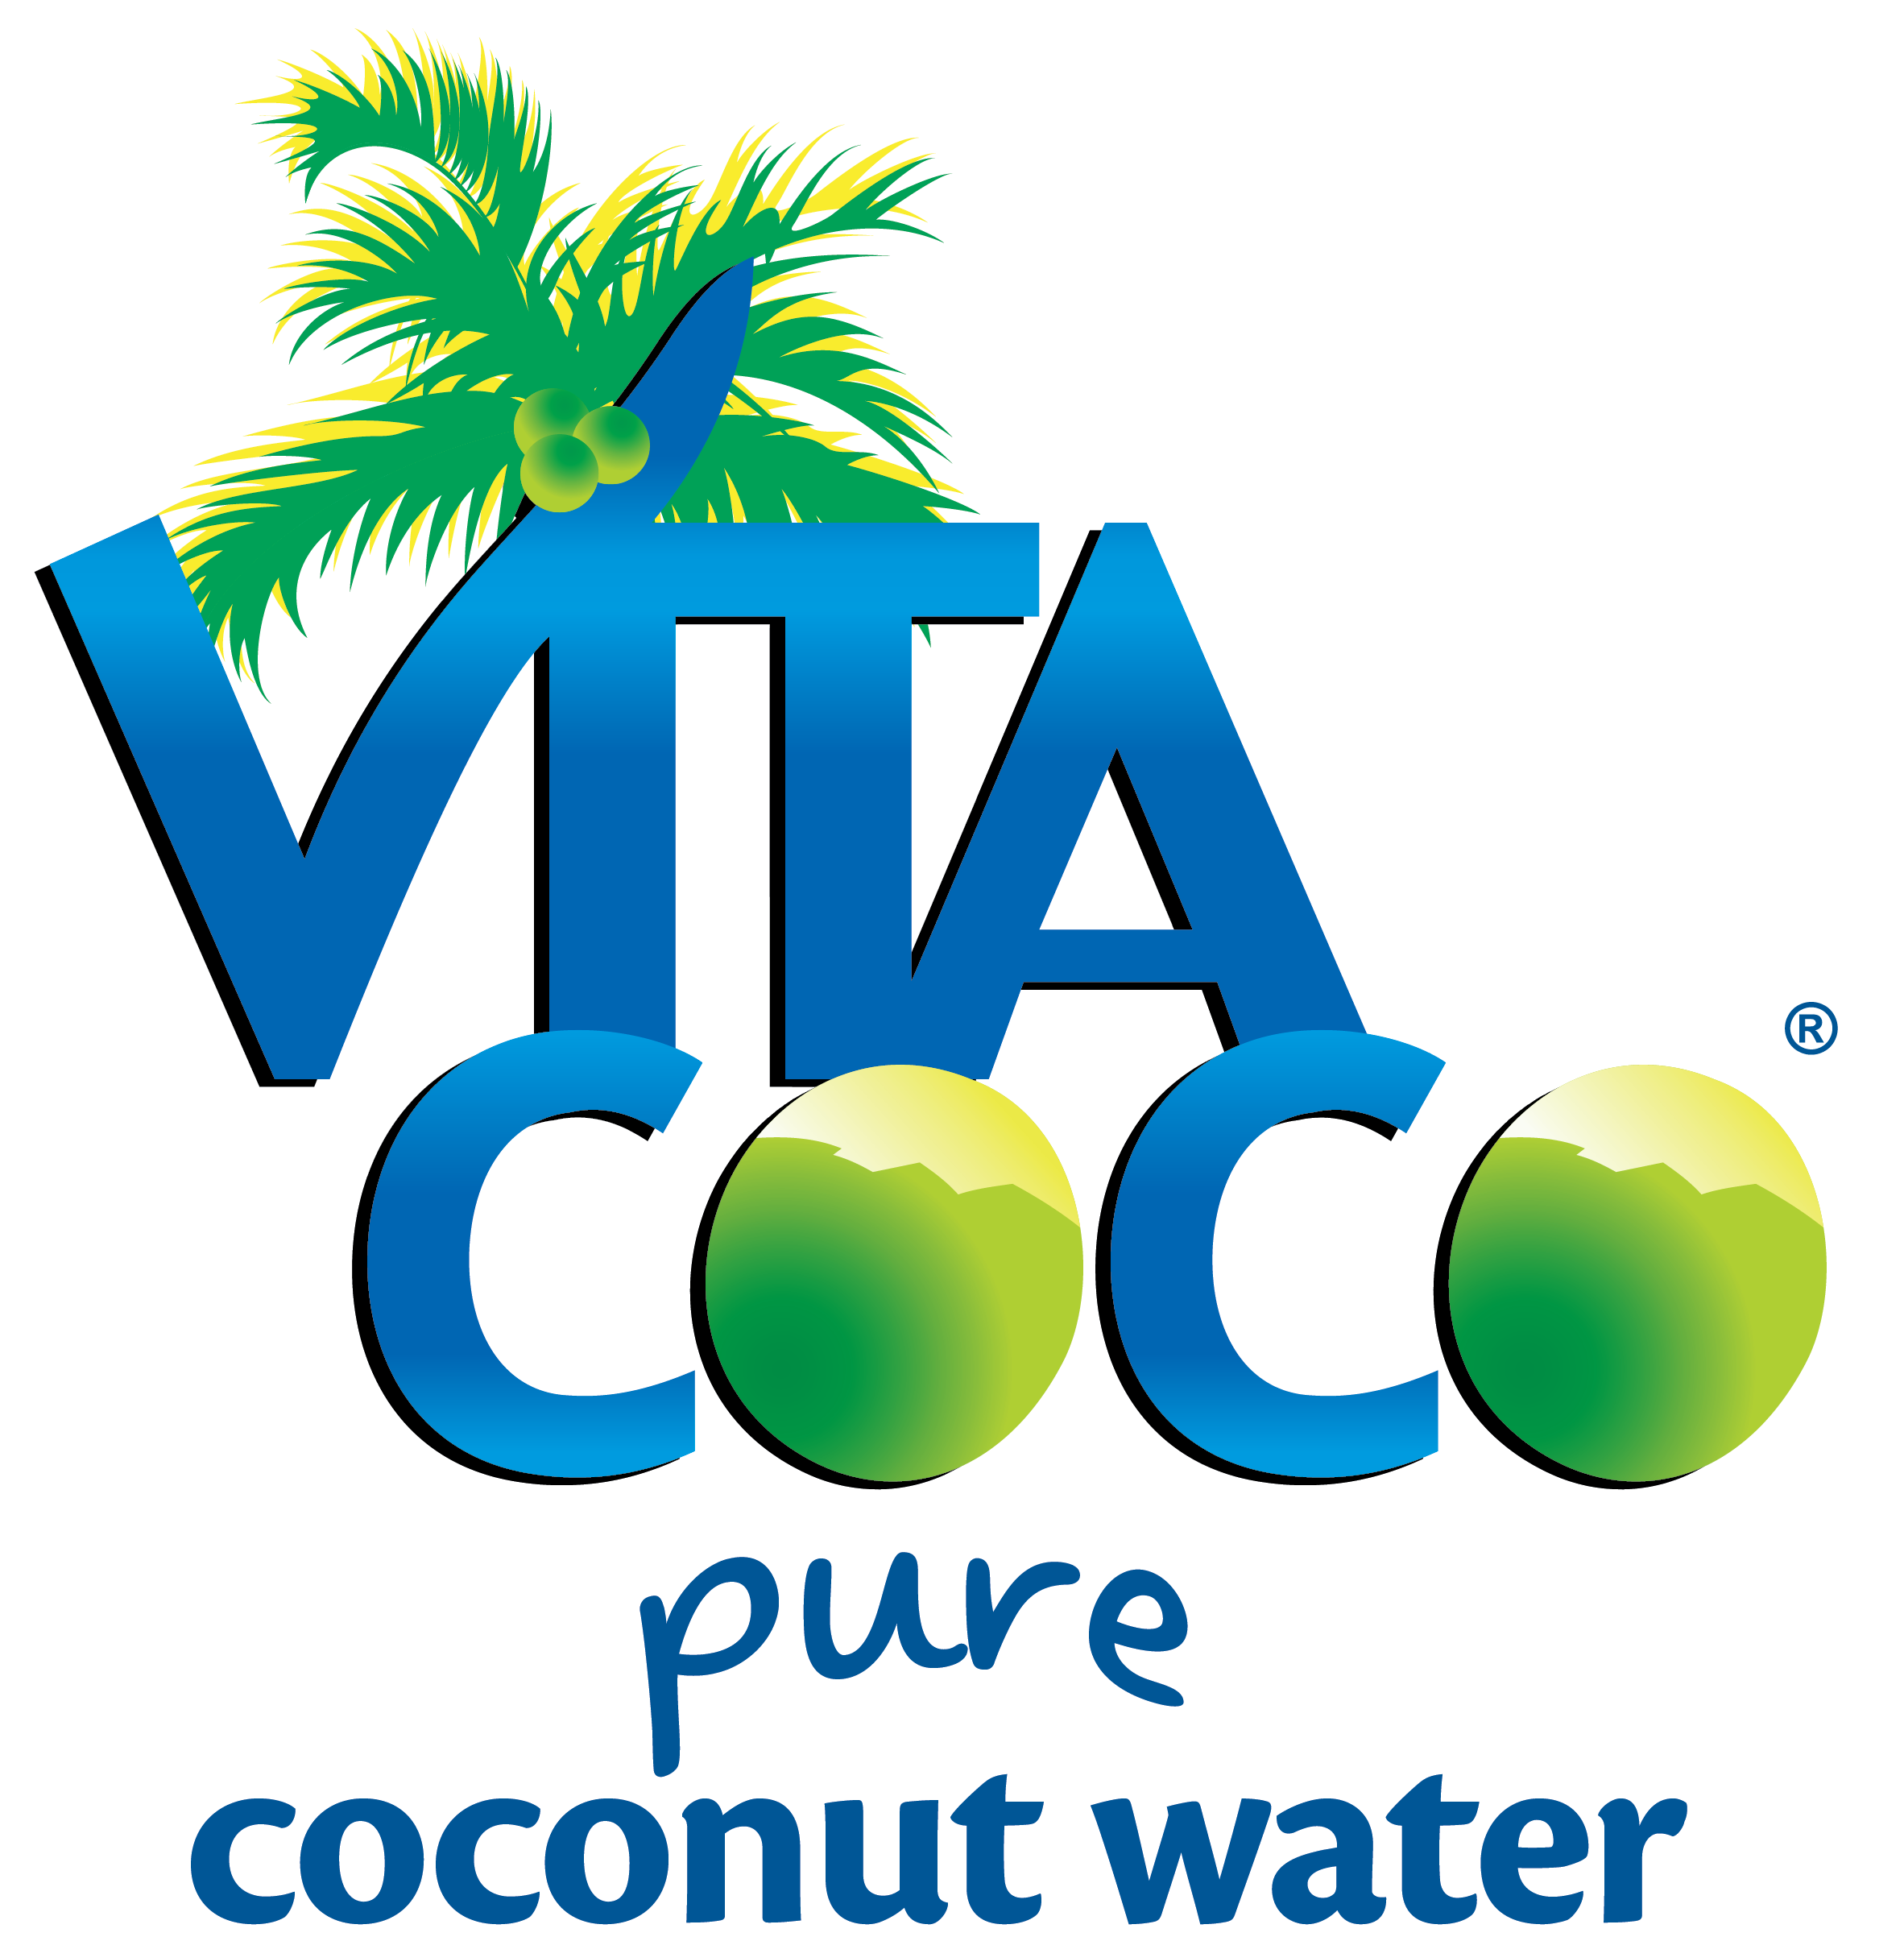 Vita momentum indoor climbing. Coco logo png graphic freeuse download